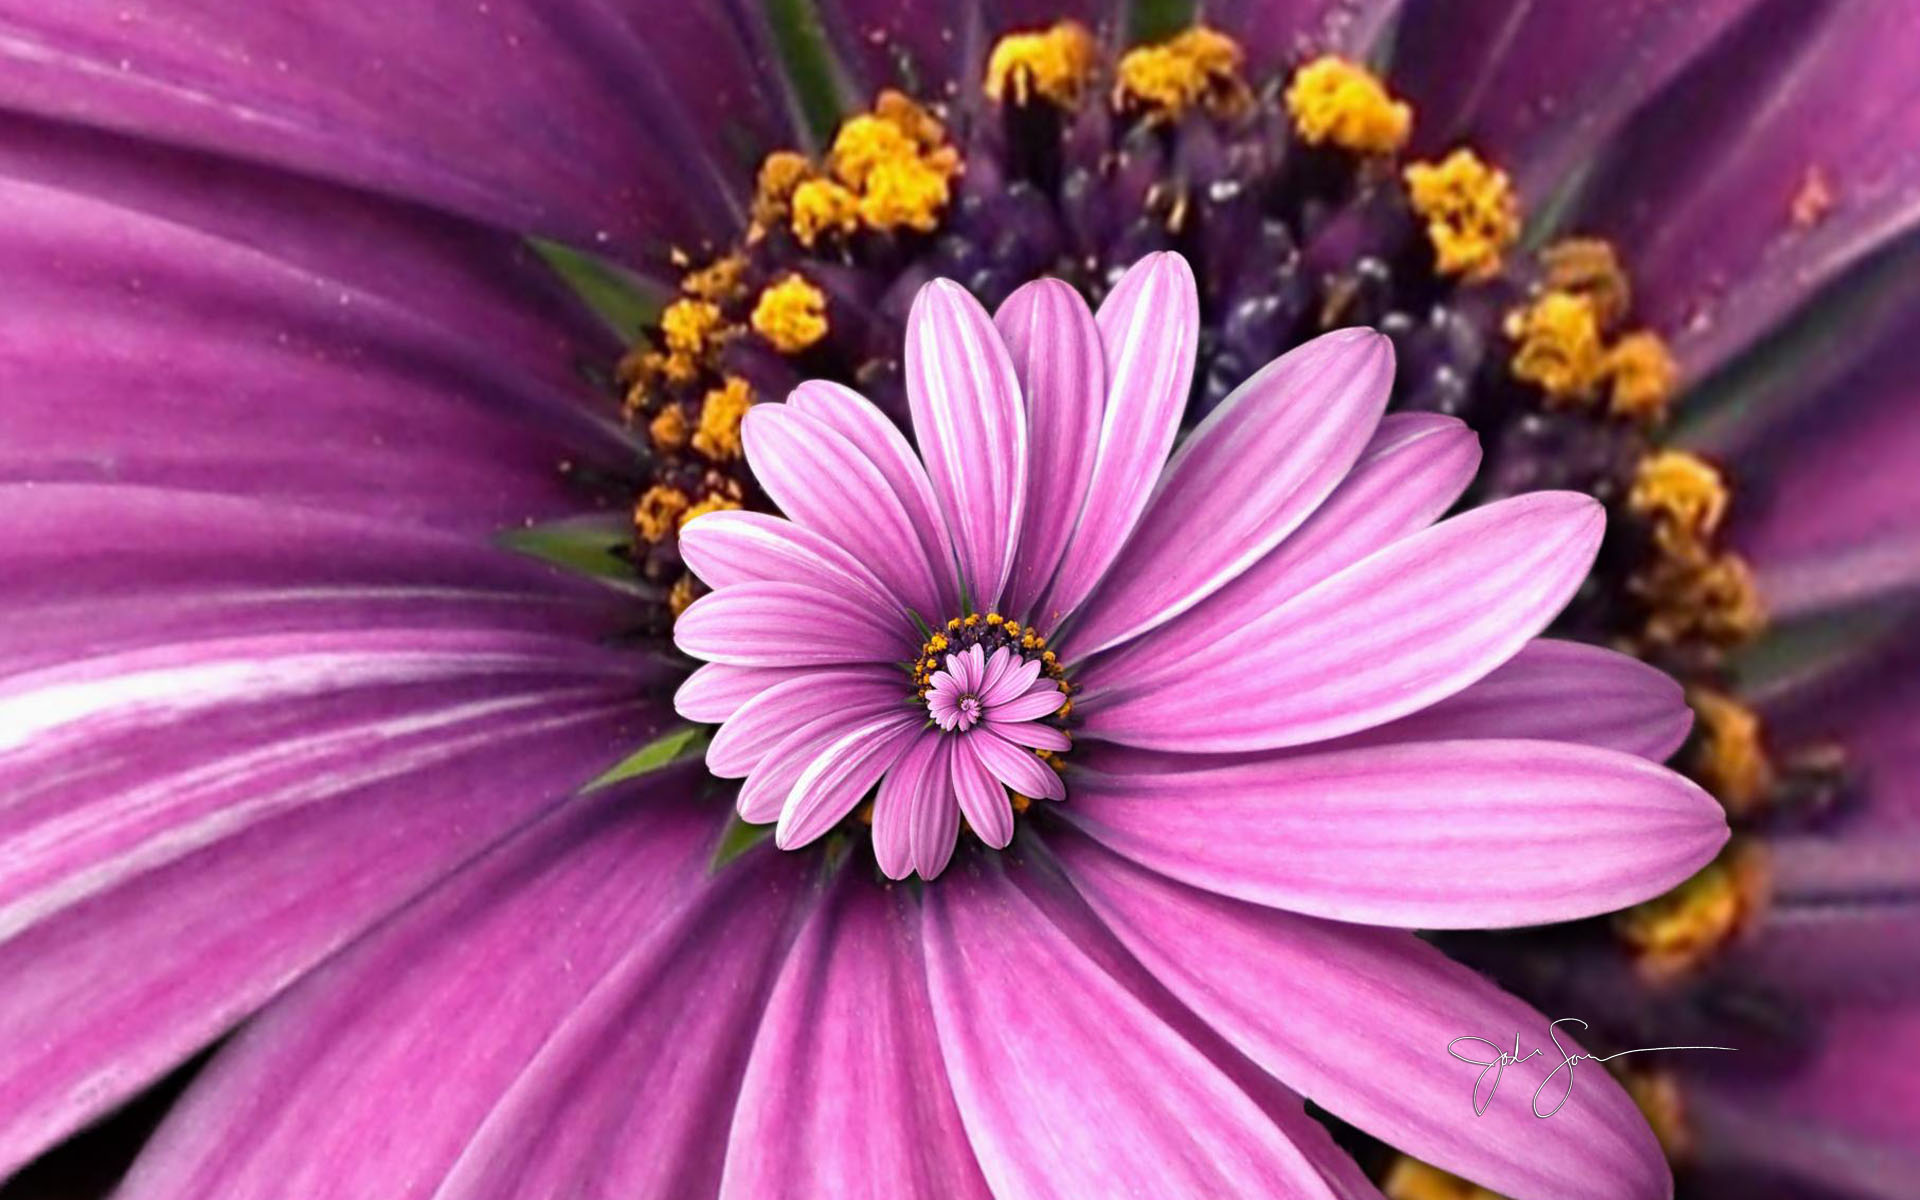 96 beautiful flowers in the world wallpaper 50 beautiful flower beautiful flower wallpaper for android scenery wallpaper includes a purple droste with golden stamen 1920x1200 izmirmasajfo